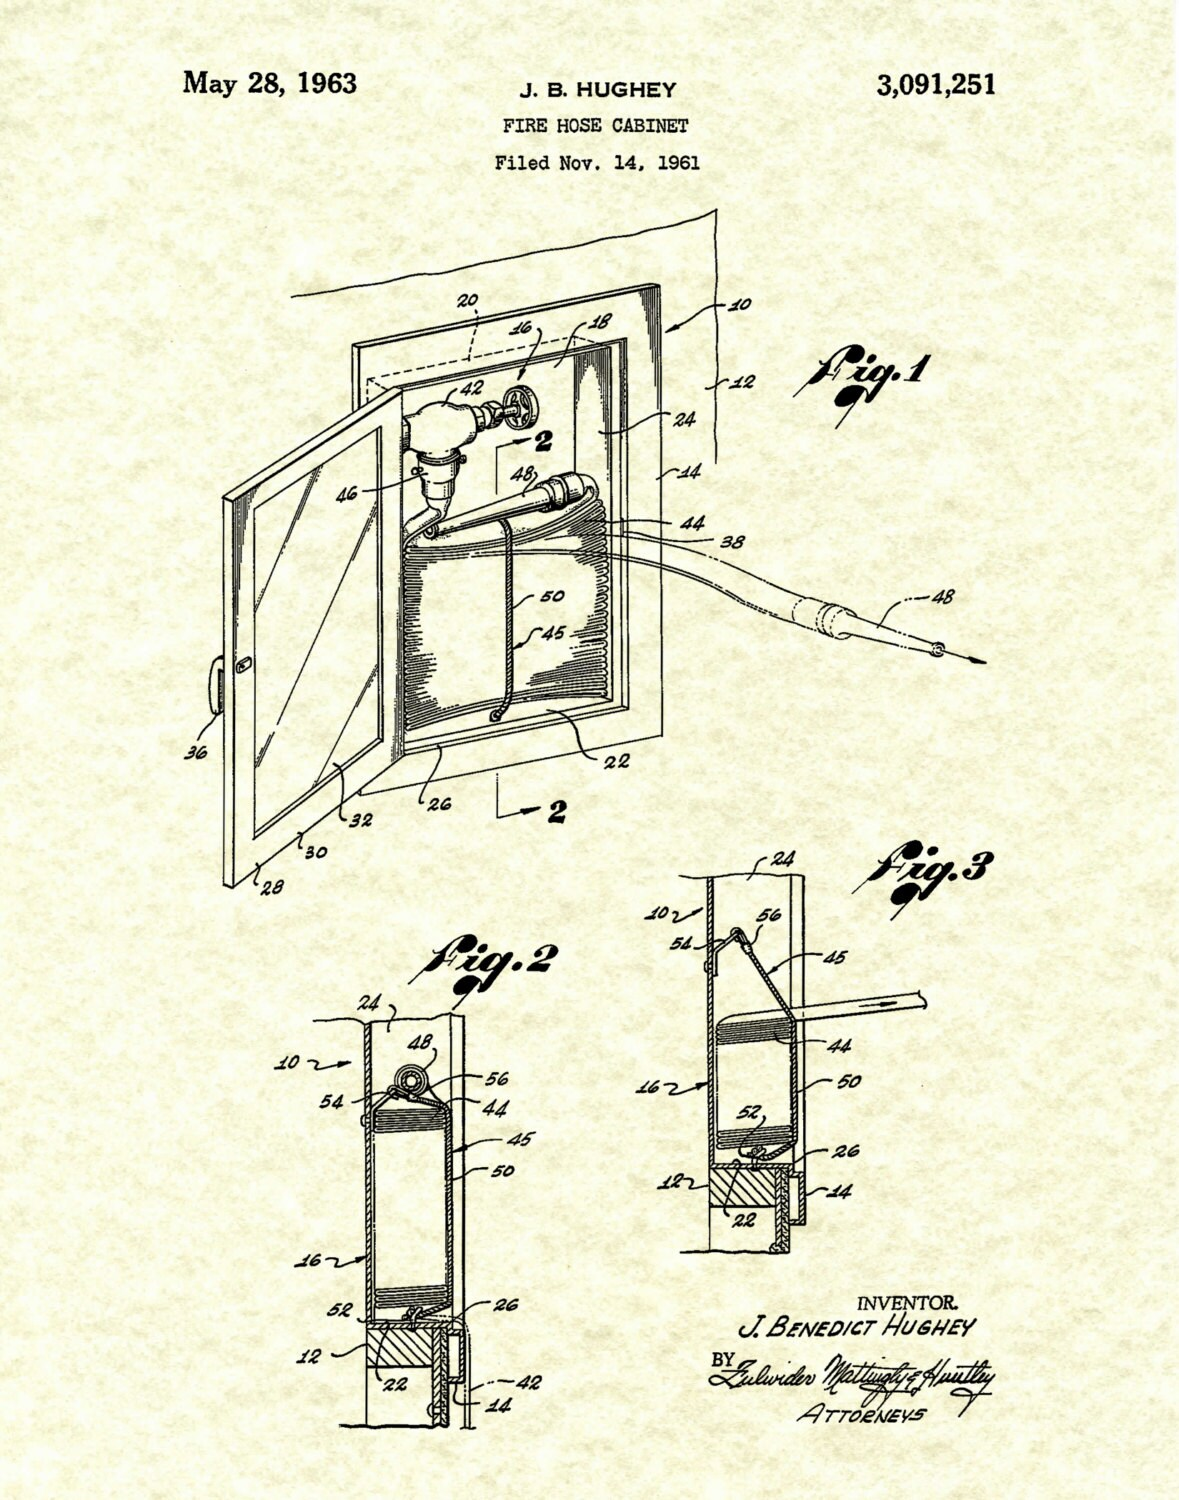 American Fire Hose And Cabinet Patent 1963 Fire Hose Cabinet Art Print Poster Fire House